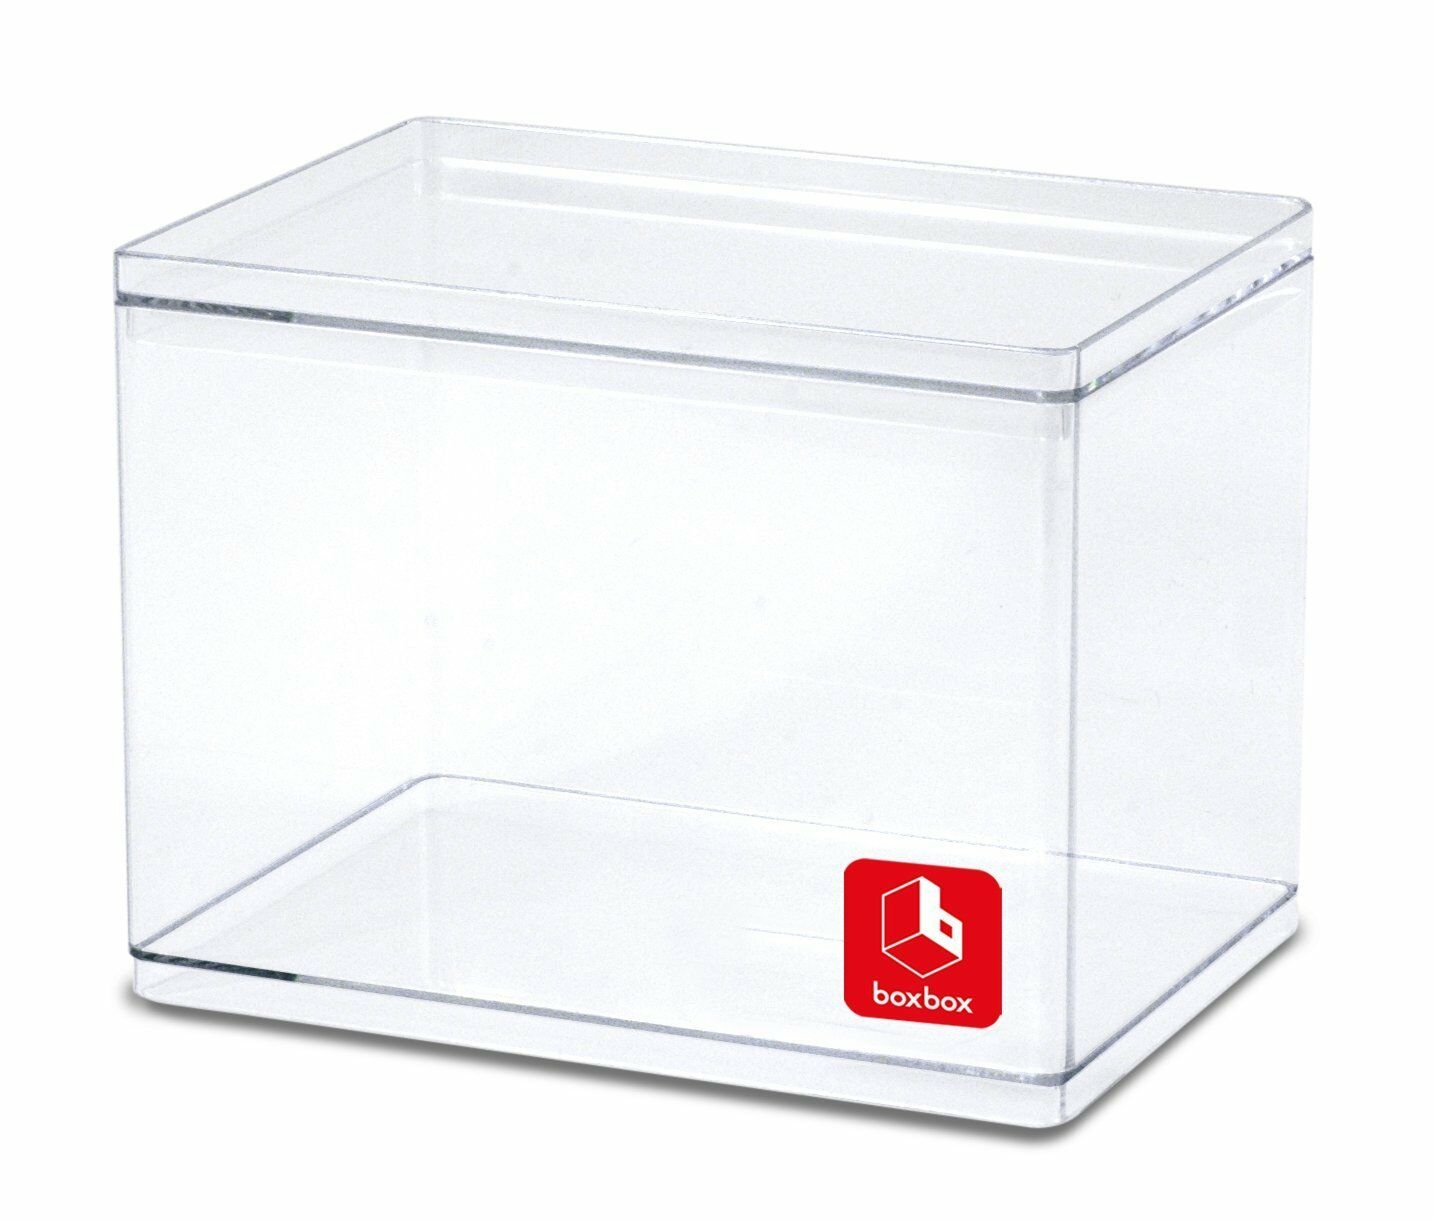 Clear Display Boxes 4pcs Set Hard Plastic Boxes Organizer Crystal Clear